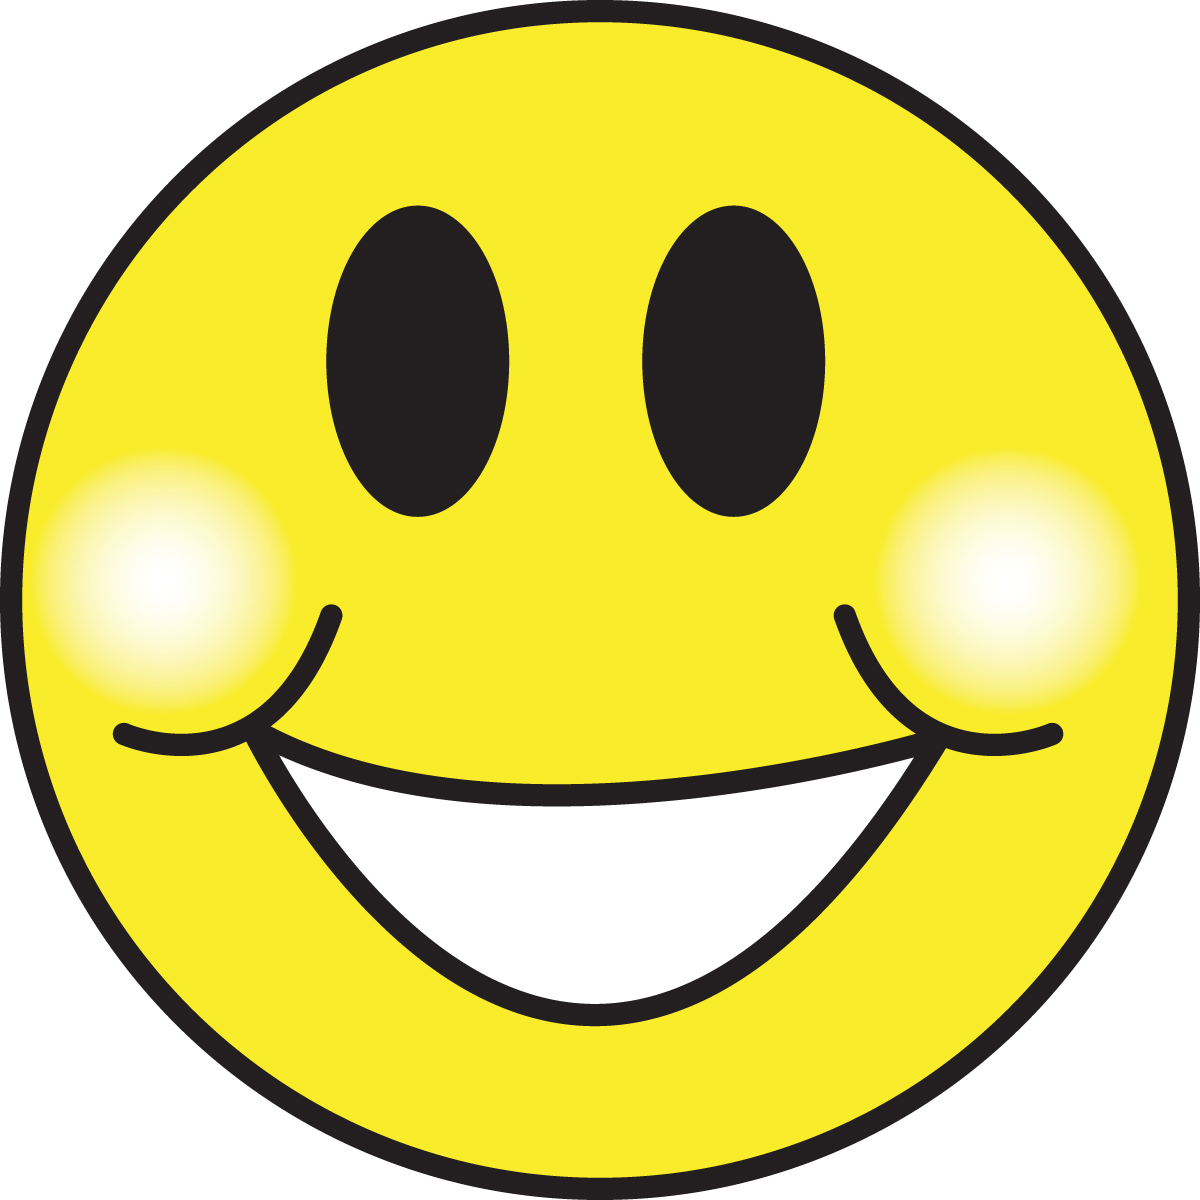 Smiley face clip art. Emotions clipart panda free